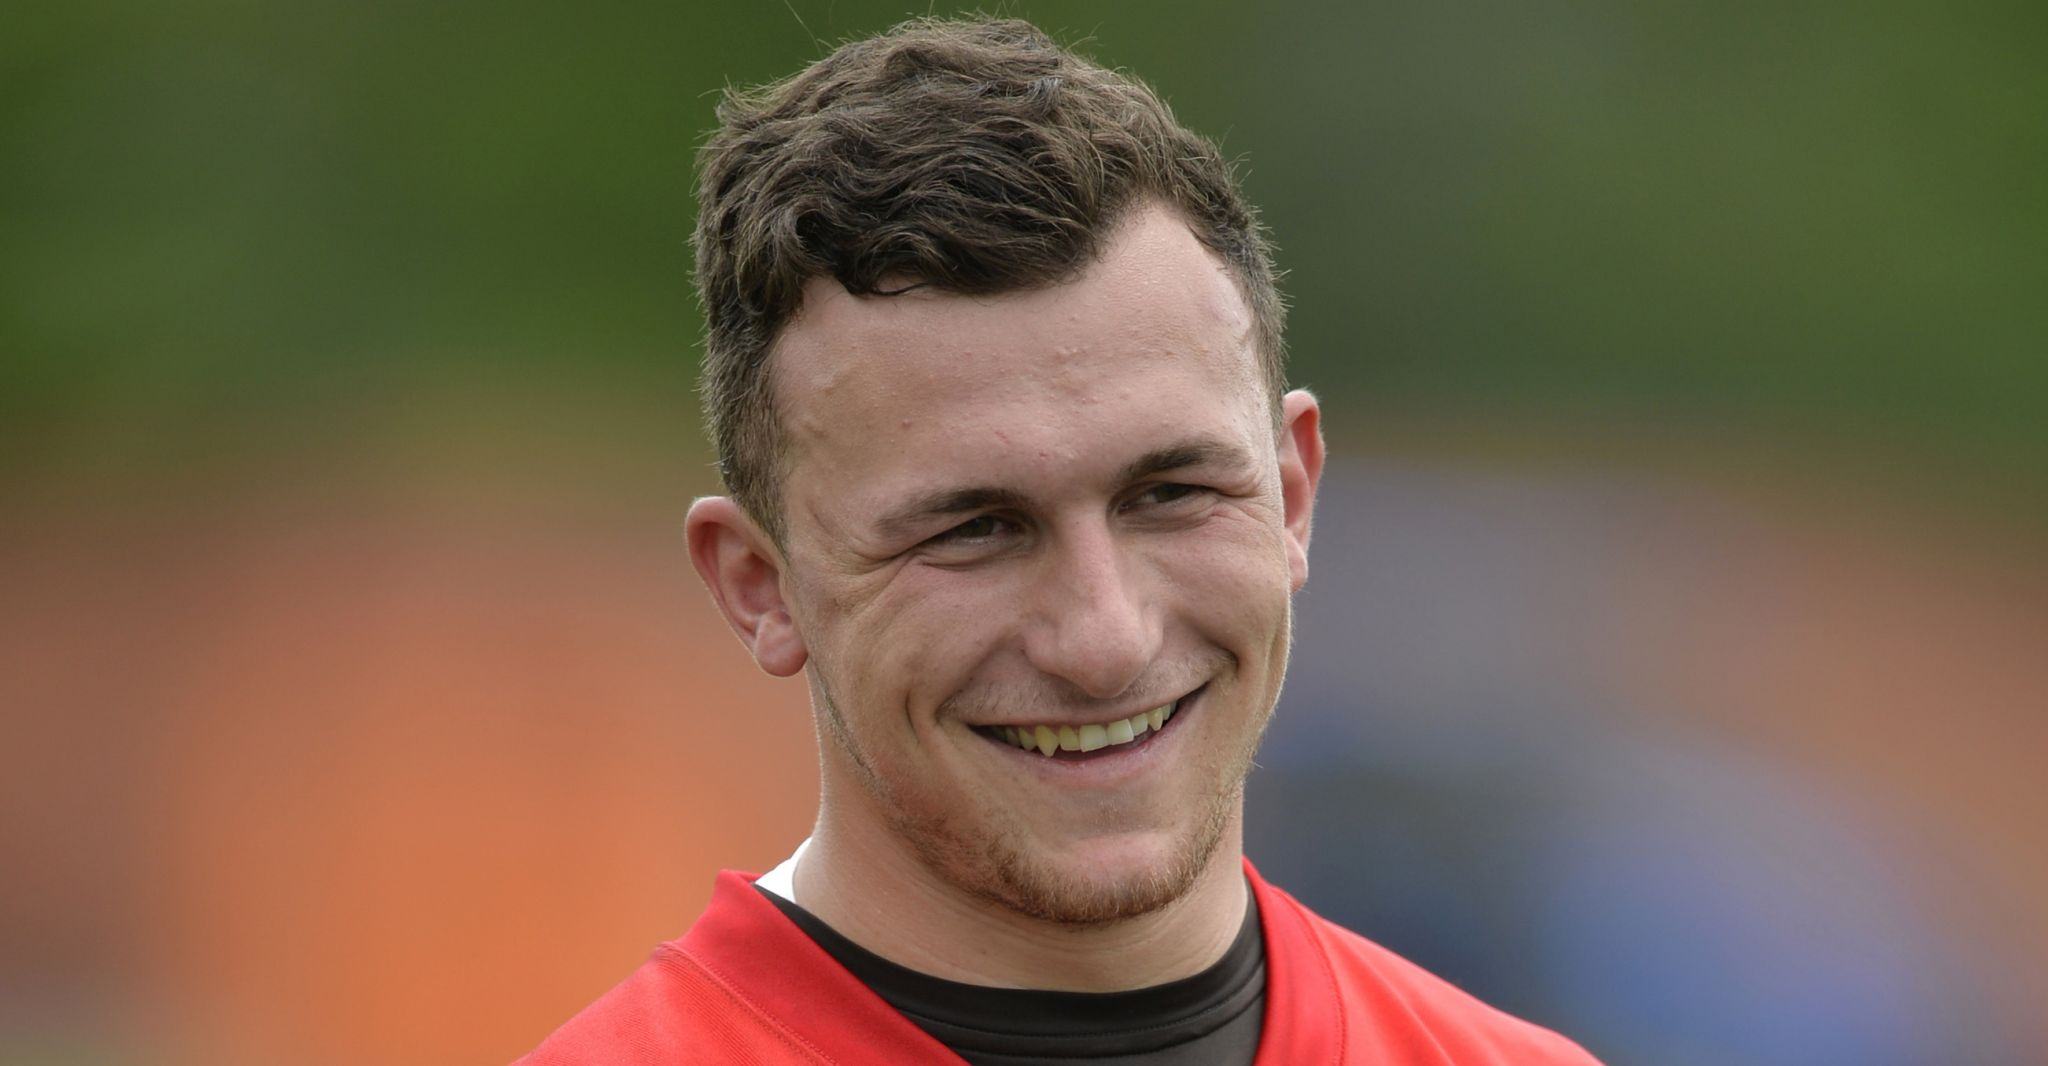 Johnny Manziel cleared to play in Canadian Football League